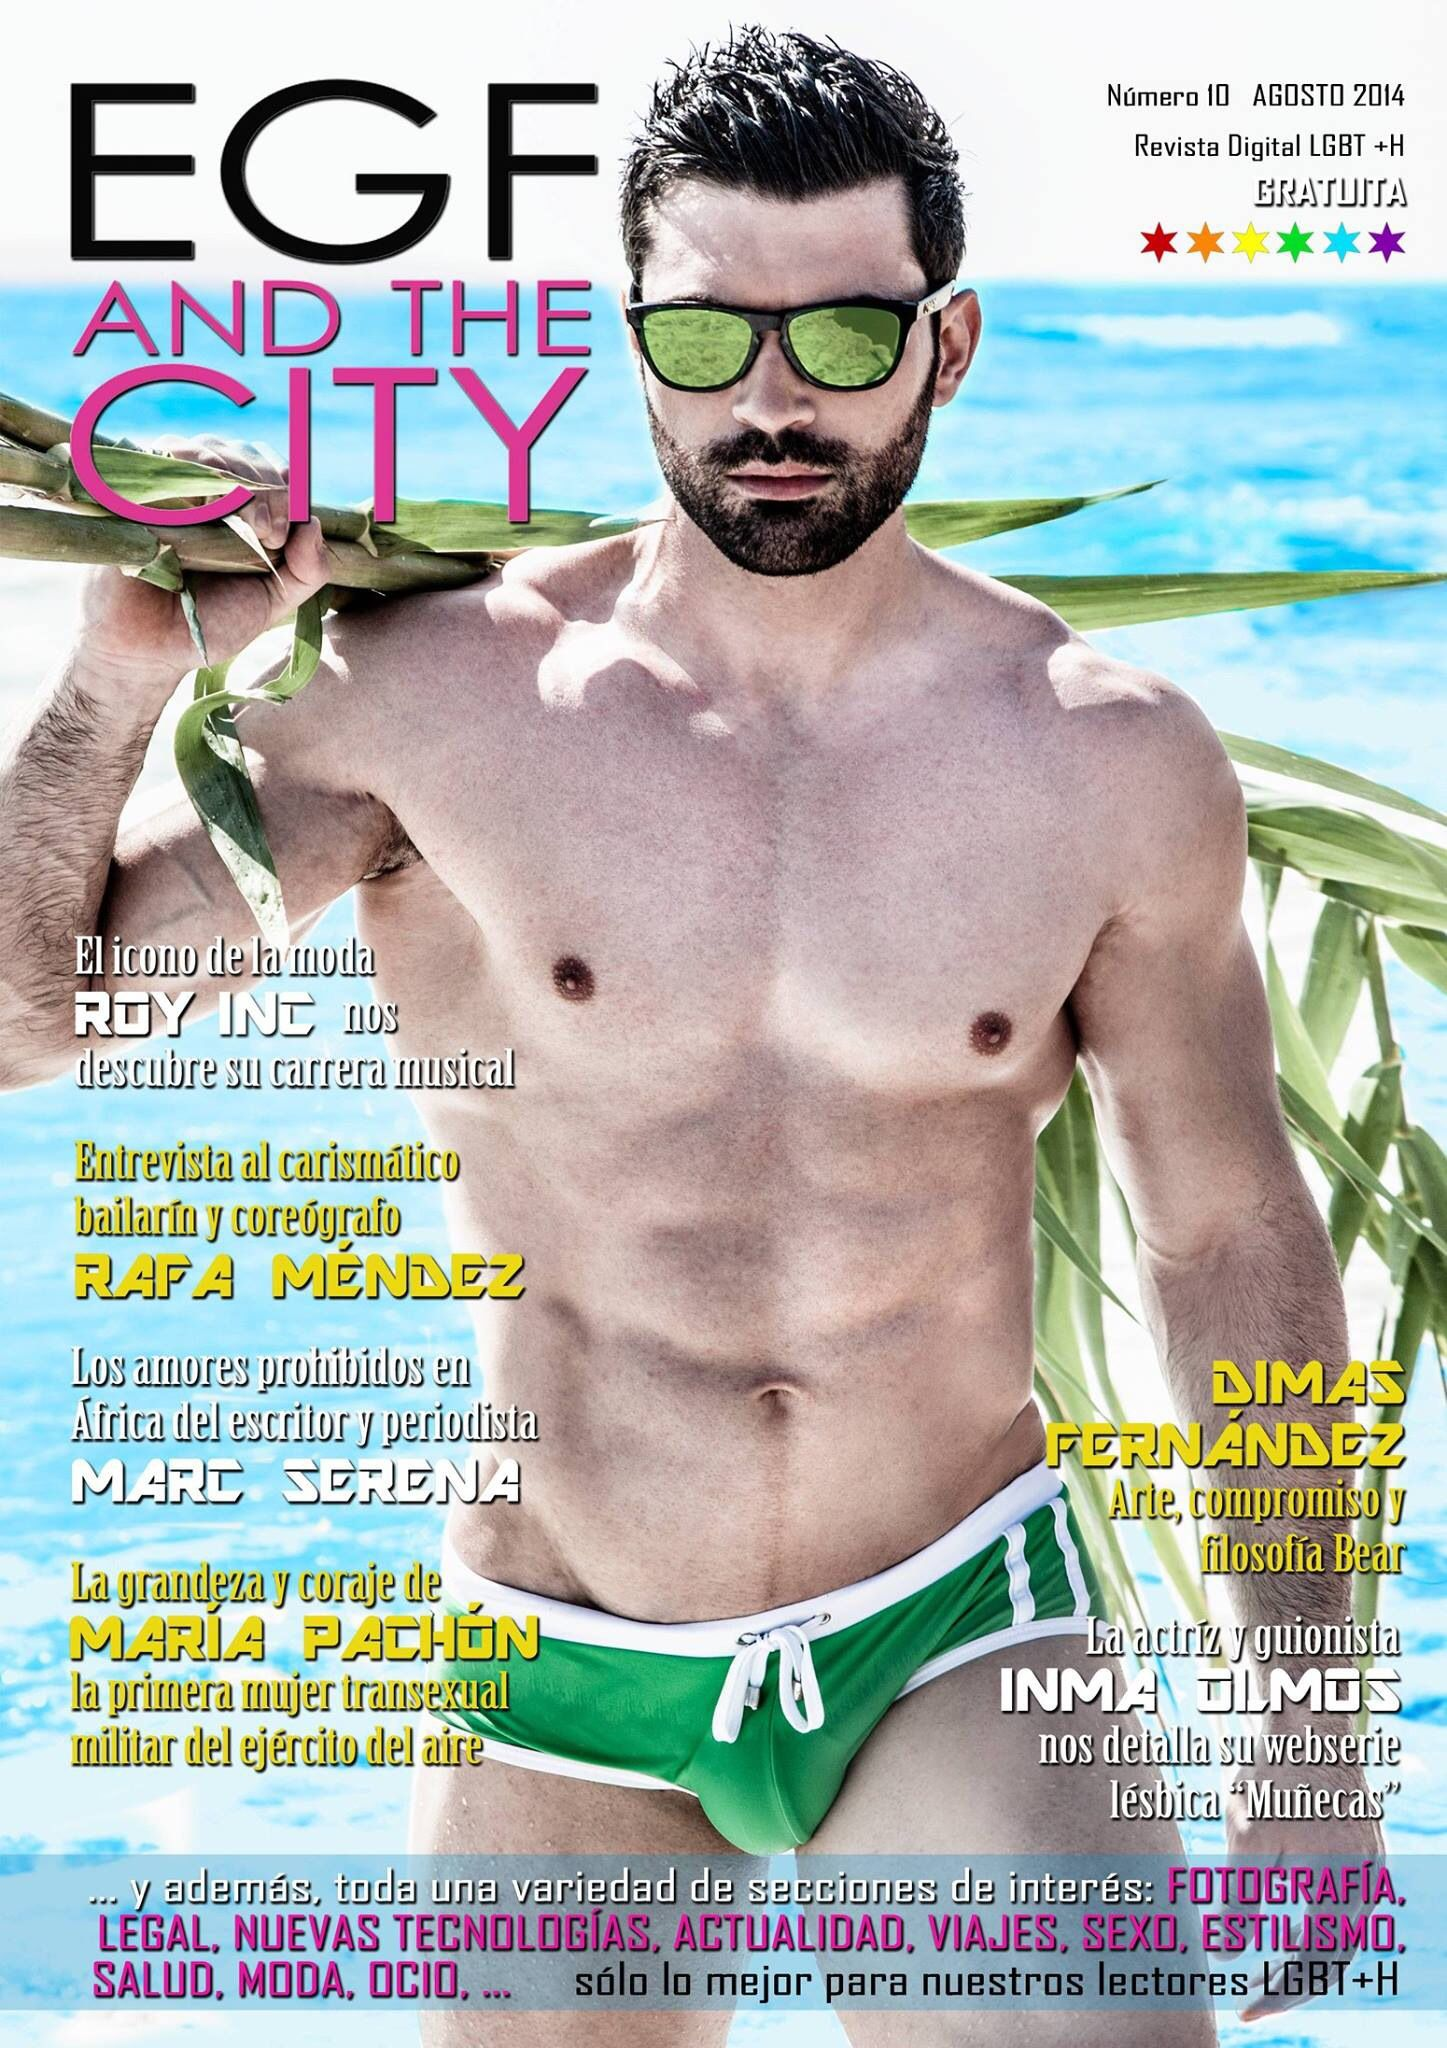 How to Find Gay Friendly Cities for Vacationing